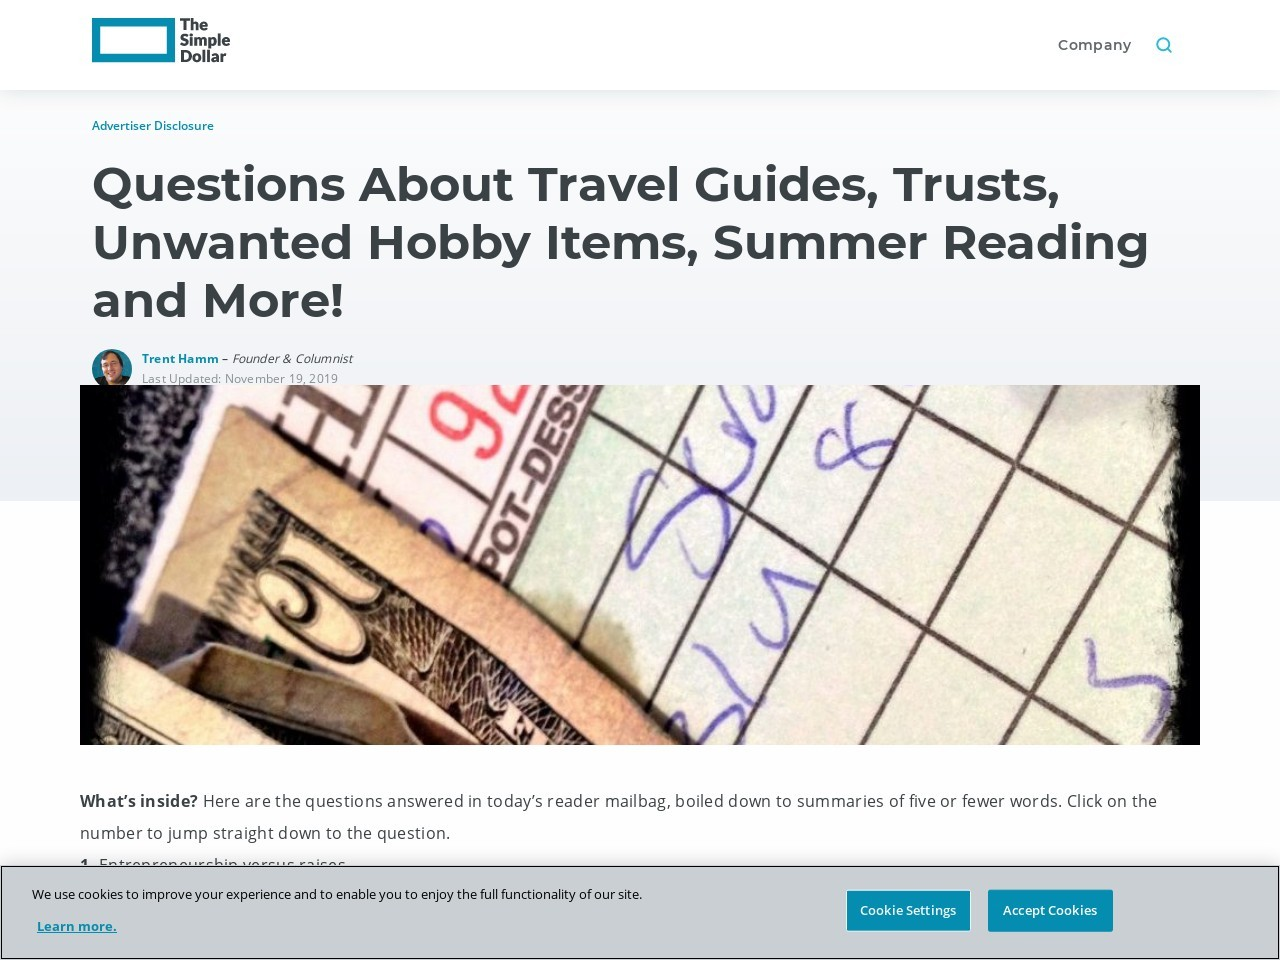 Questions About Travel Guides, Trusts, Unwanted Hobby Items, Summer Reading and More!